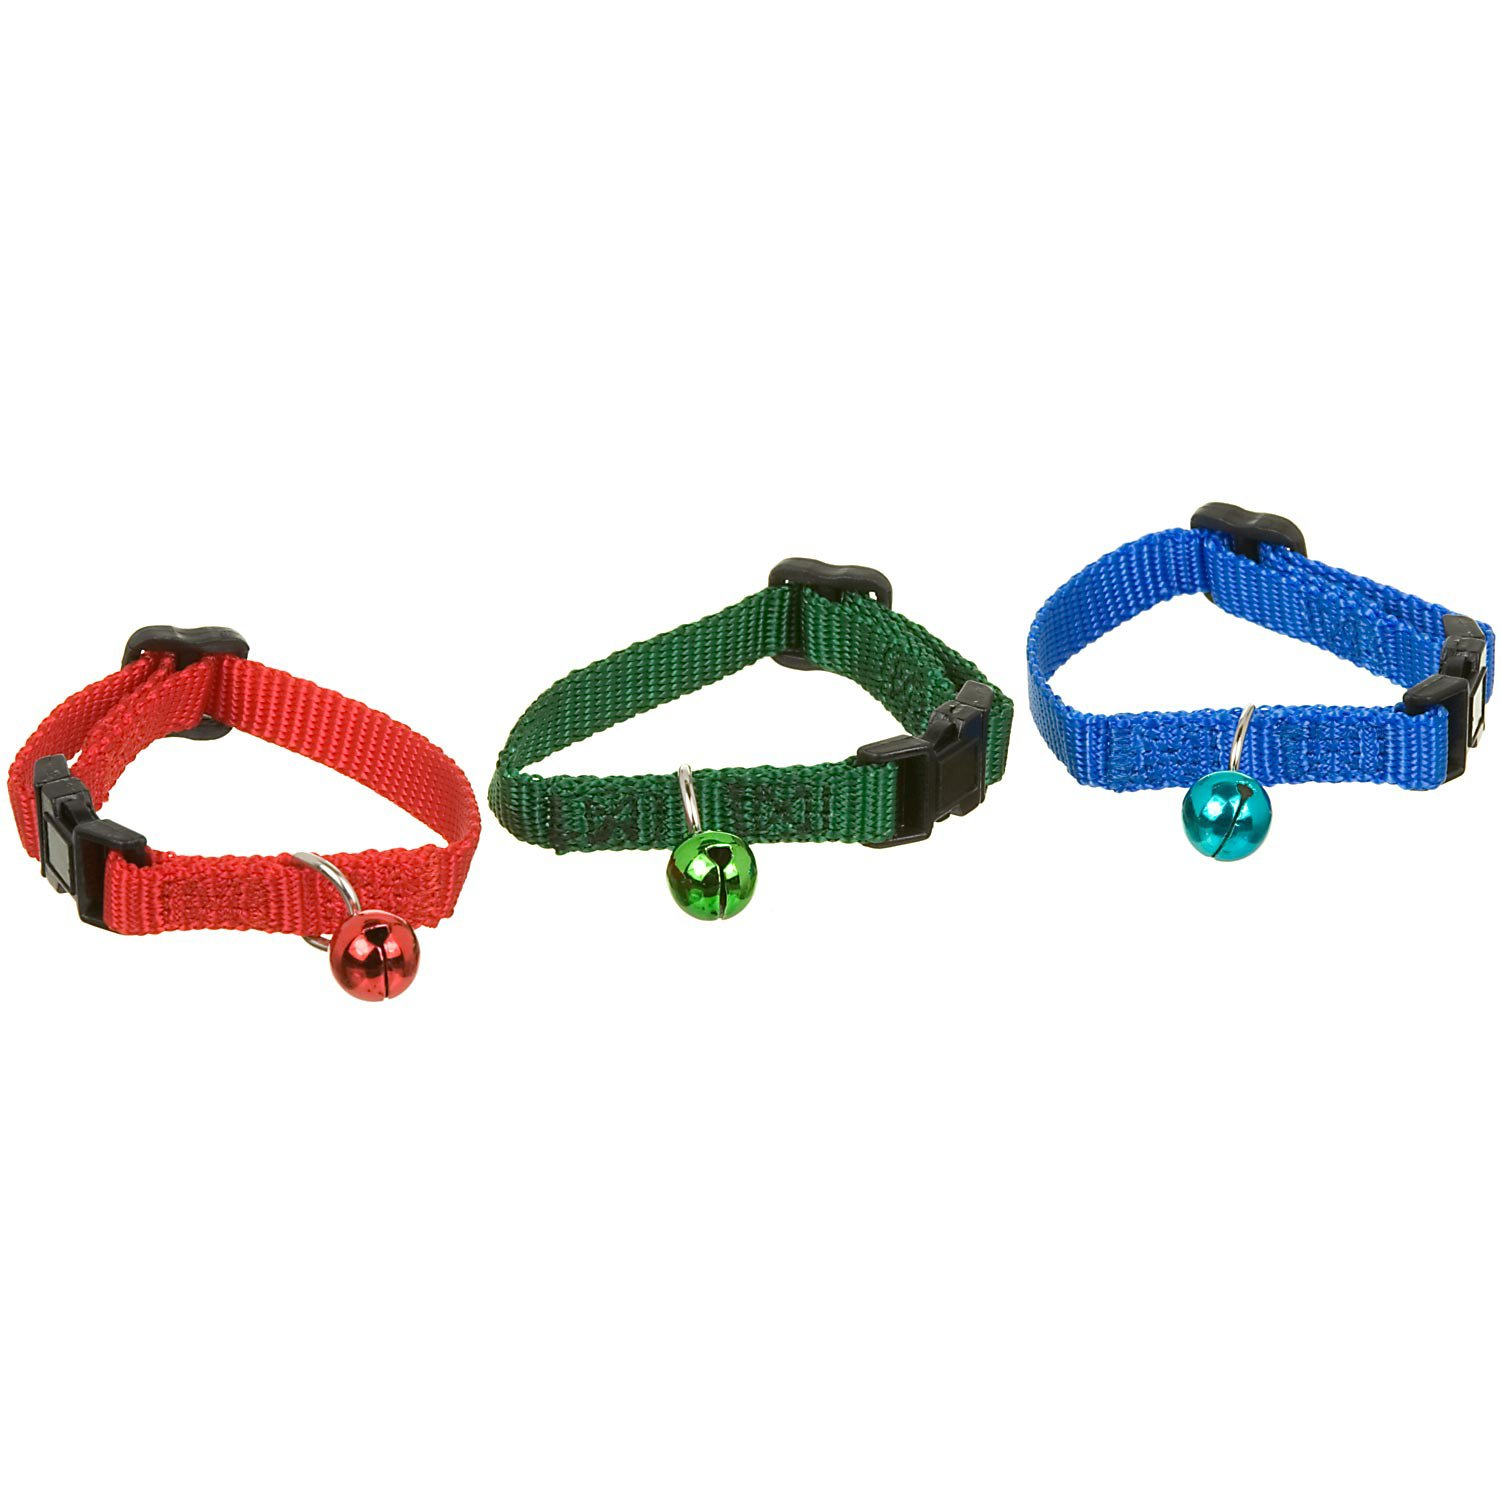 Petco Ferret Collar with Bell